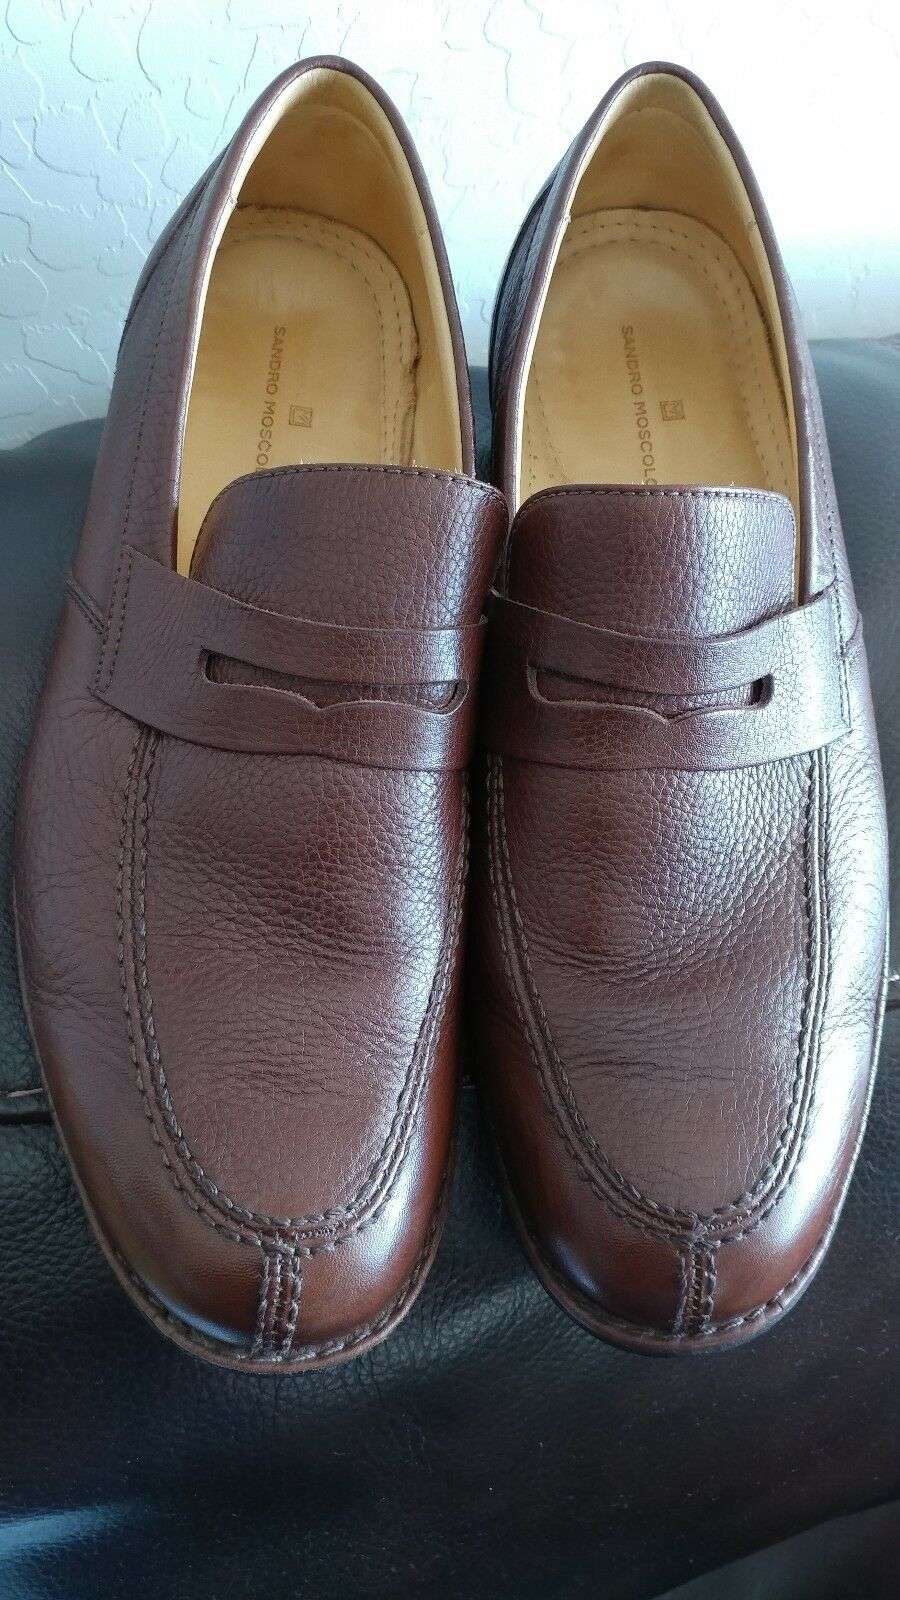 Sandro Moscoloni Brown Penny Loafers Slip On  shoes Size 8.5D